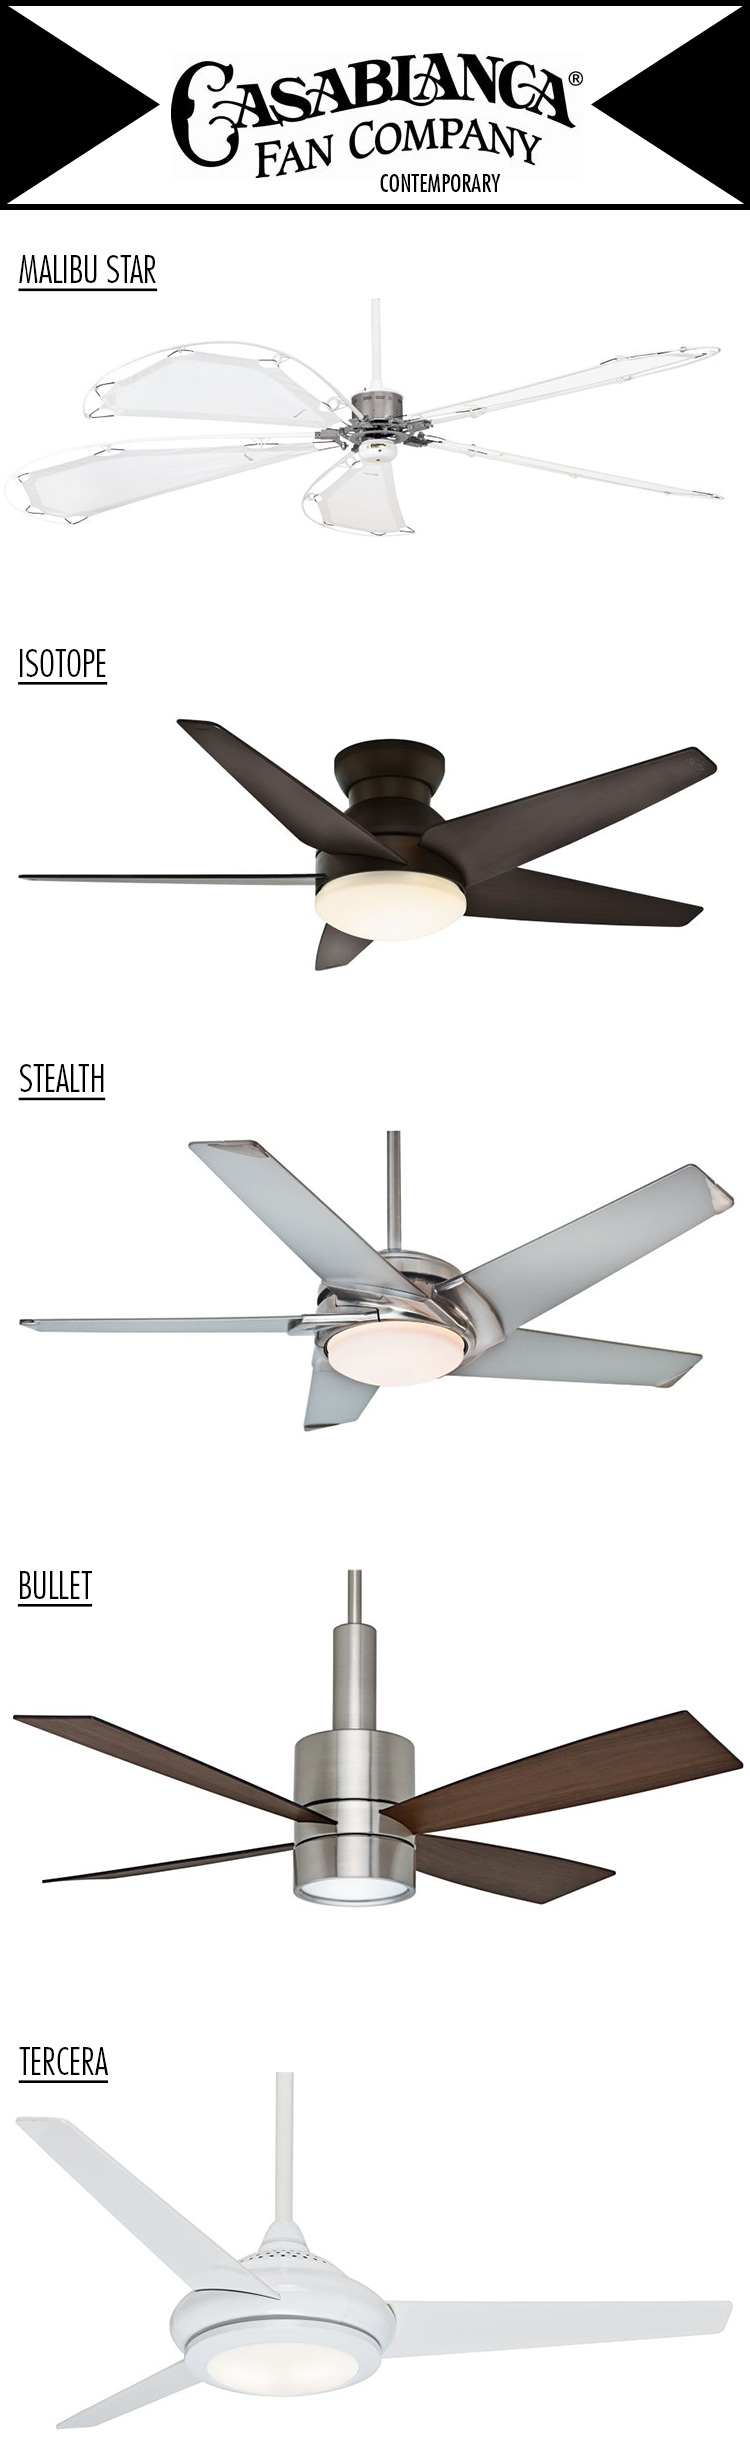 Casablanca Fan Company Contemporary Collection Available In Several Motor Housing And Blade Finish Combinations